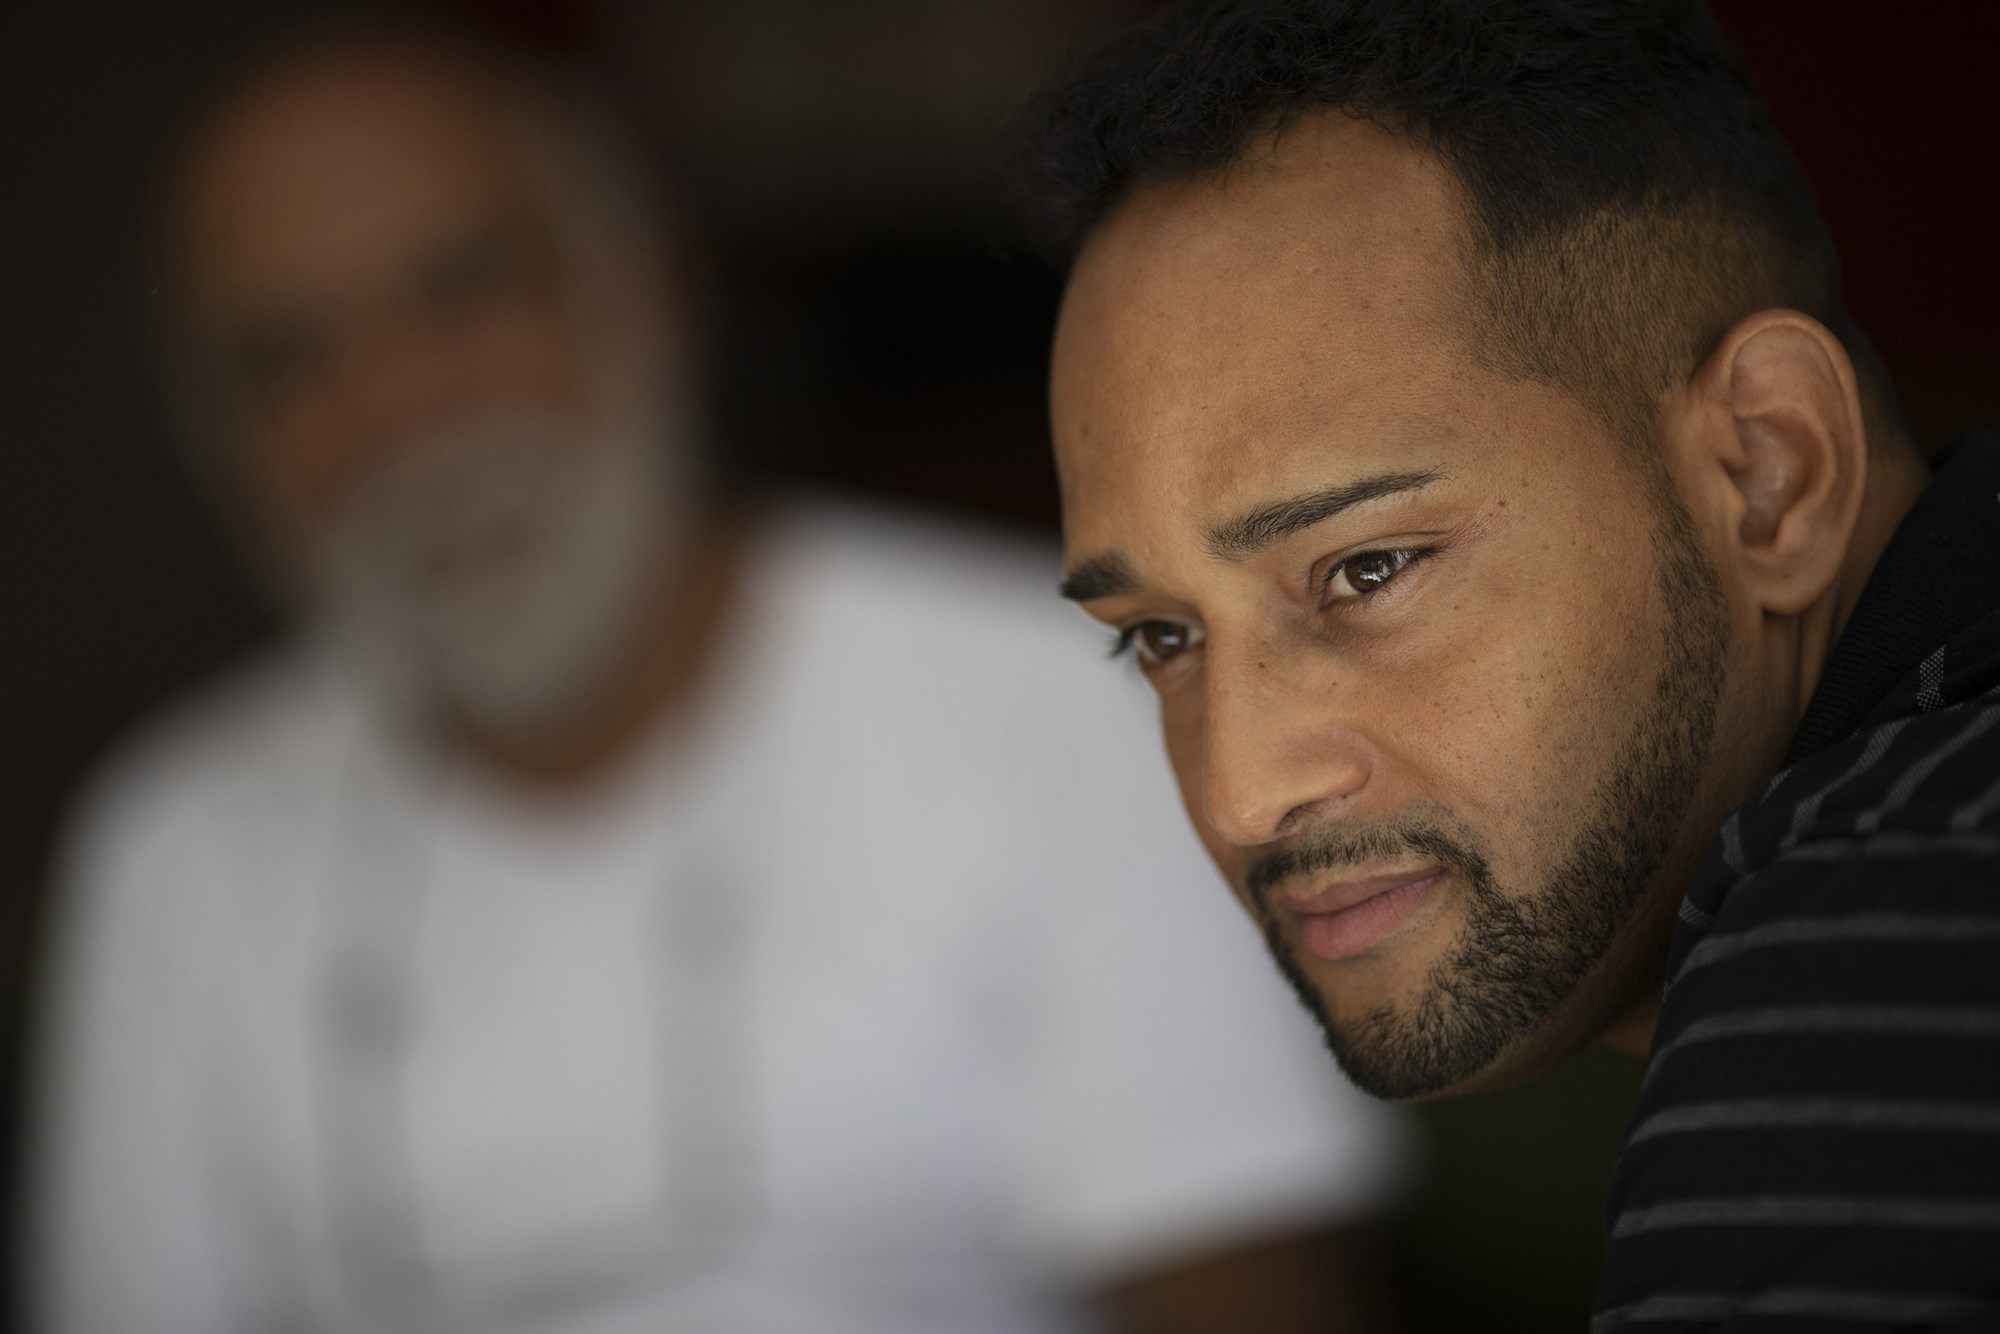 Paul  Fernando Schreiner, right, sits next to Segisfredo Silva Vanderlai, a  pastor who has been lodging Schreiner since a few weeks after his  arrival, in Niteroi, Brazil, on April 11, 2019.Leo Correa / AP file